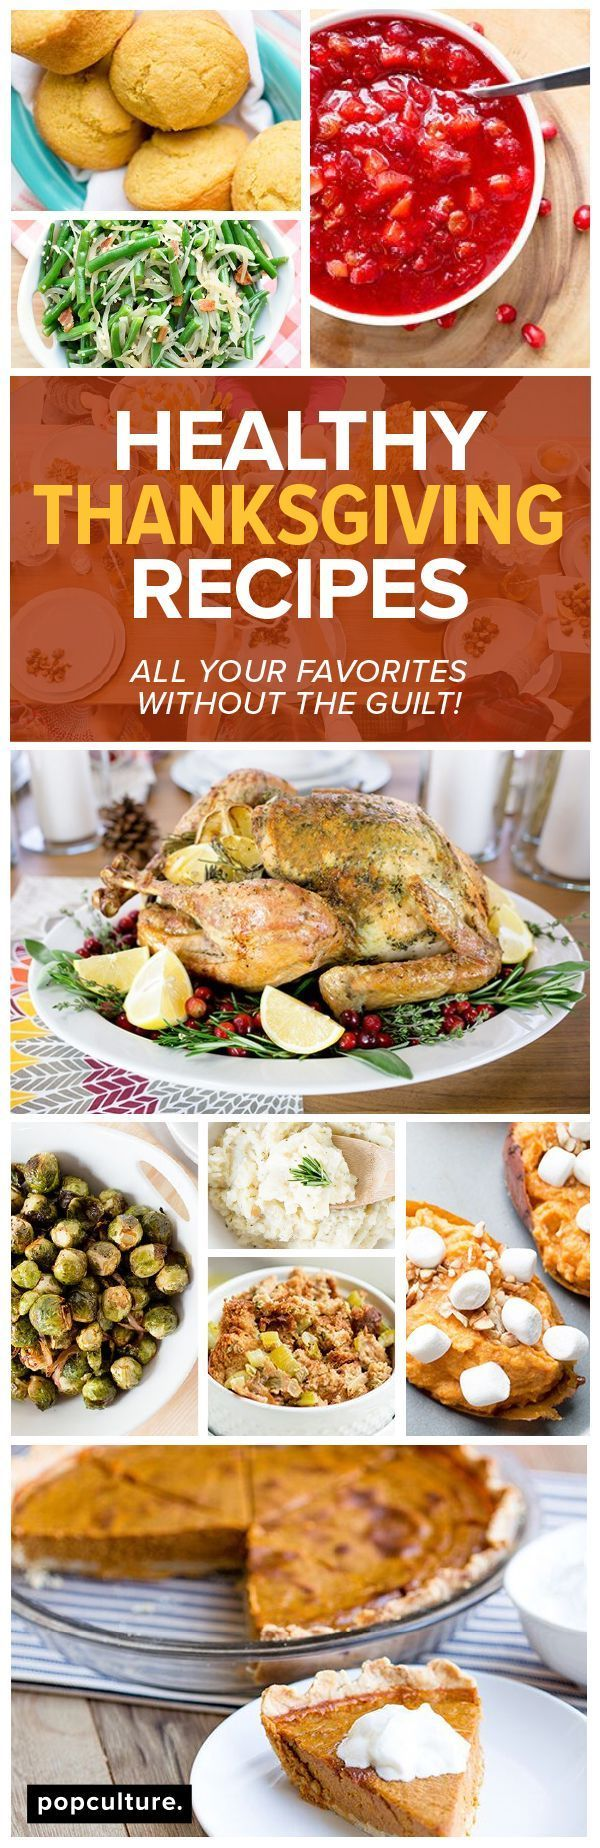 Classic Thanksgiving Menu Made Healthy in 2020 (With ...